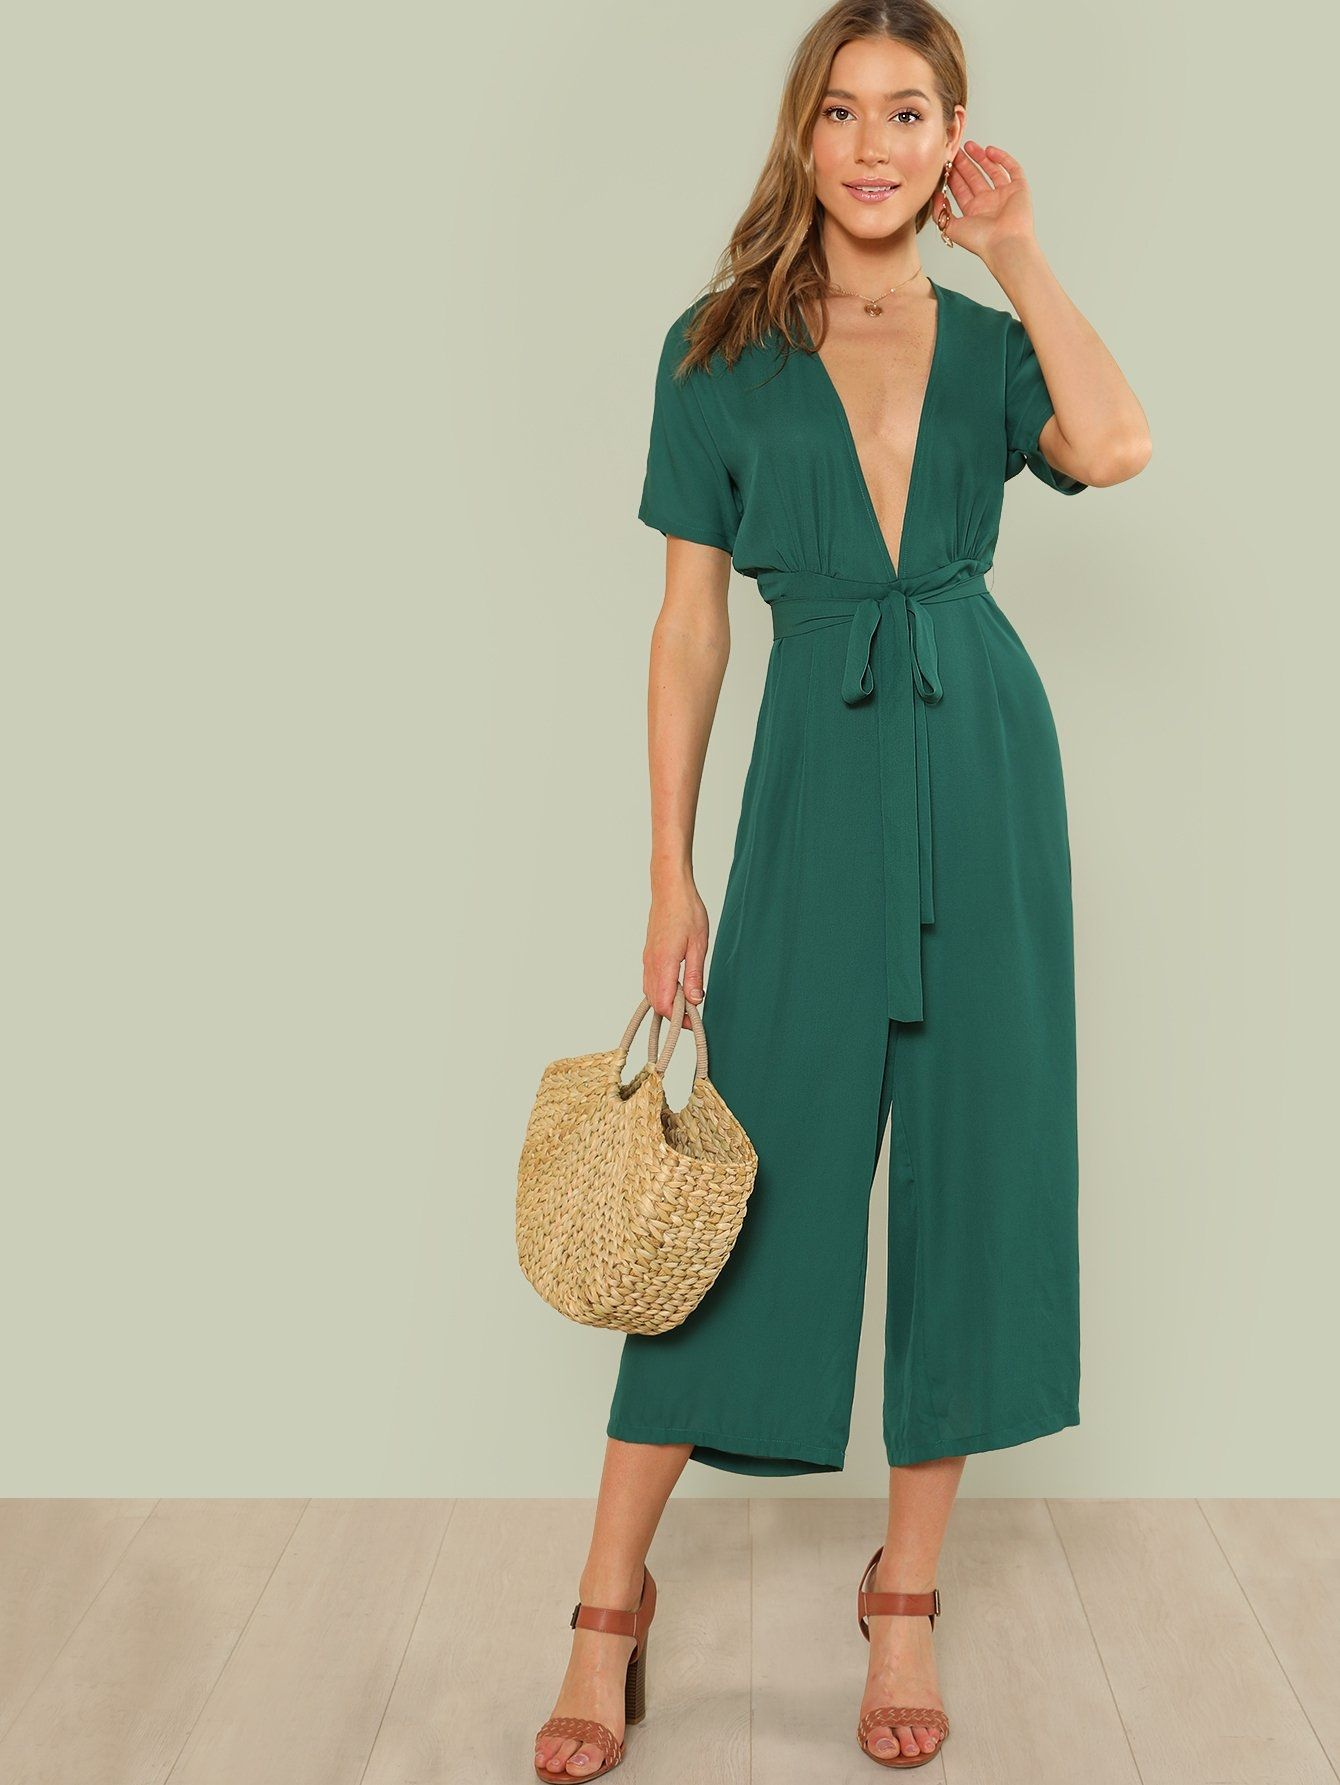 492335425da3 SHEIN Plunge Neck Belted Culotte Jumpsuit. updating Prices